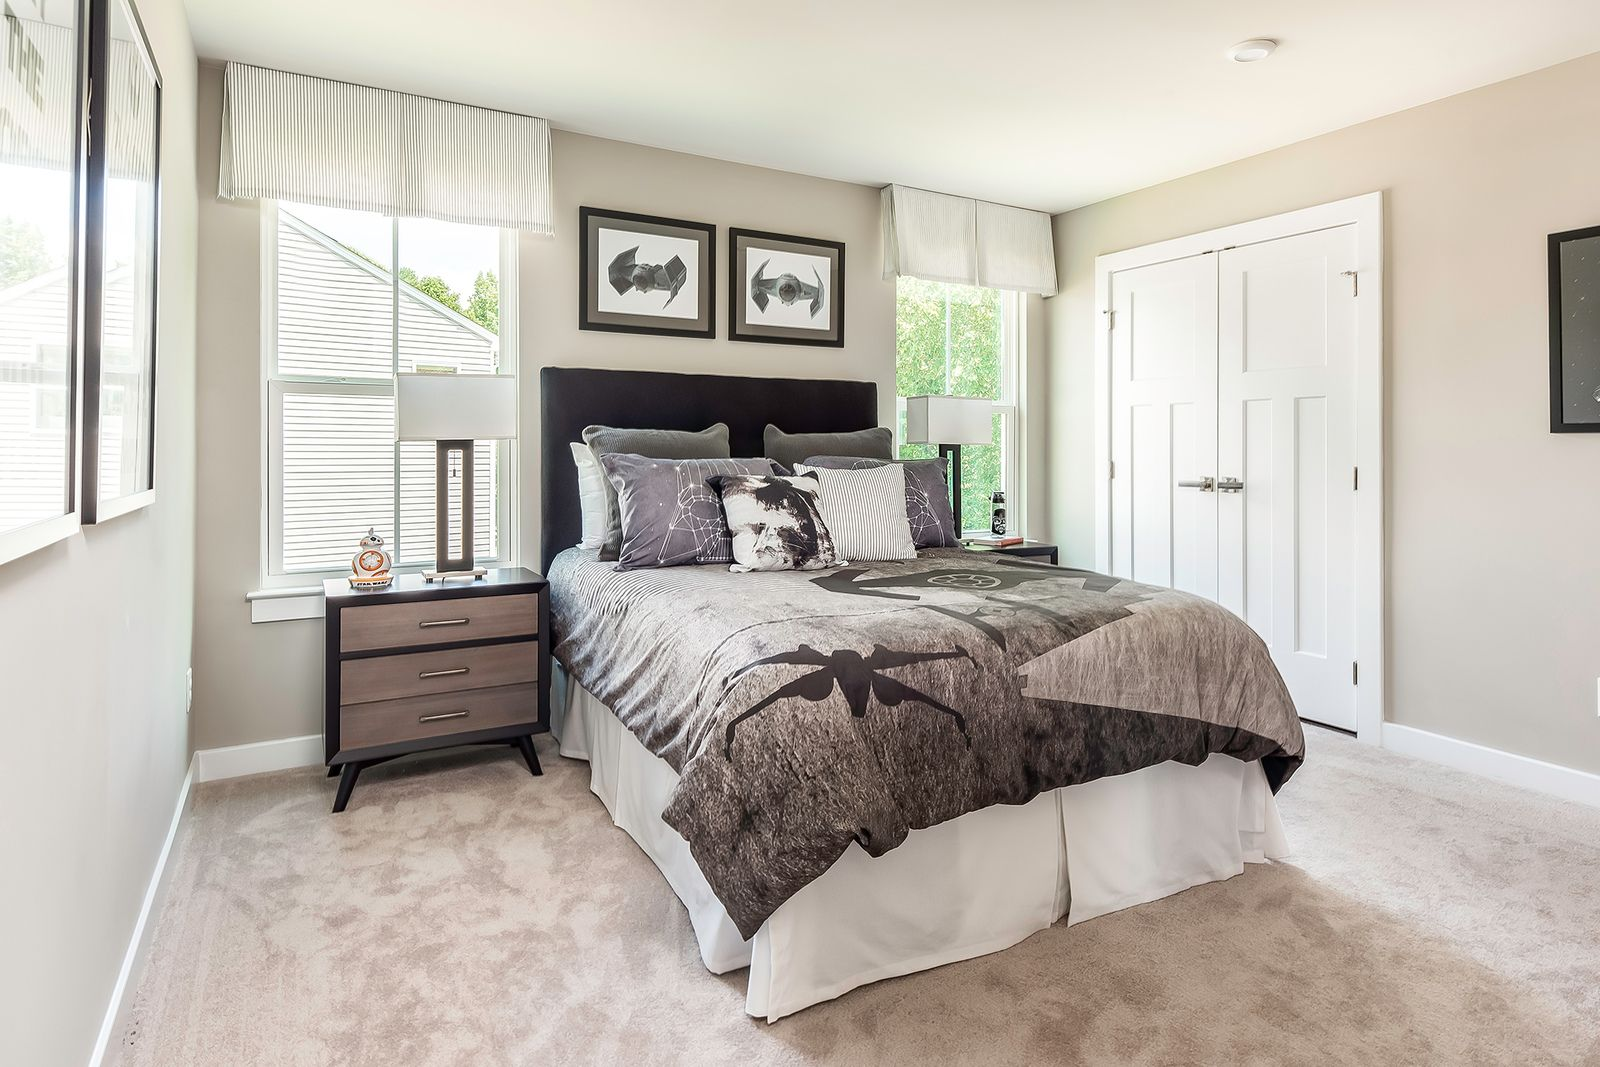 Bedroom featured in the Hudson By Ryan Homes in Dover, DE